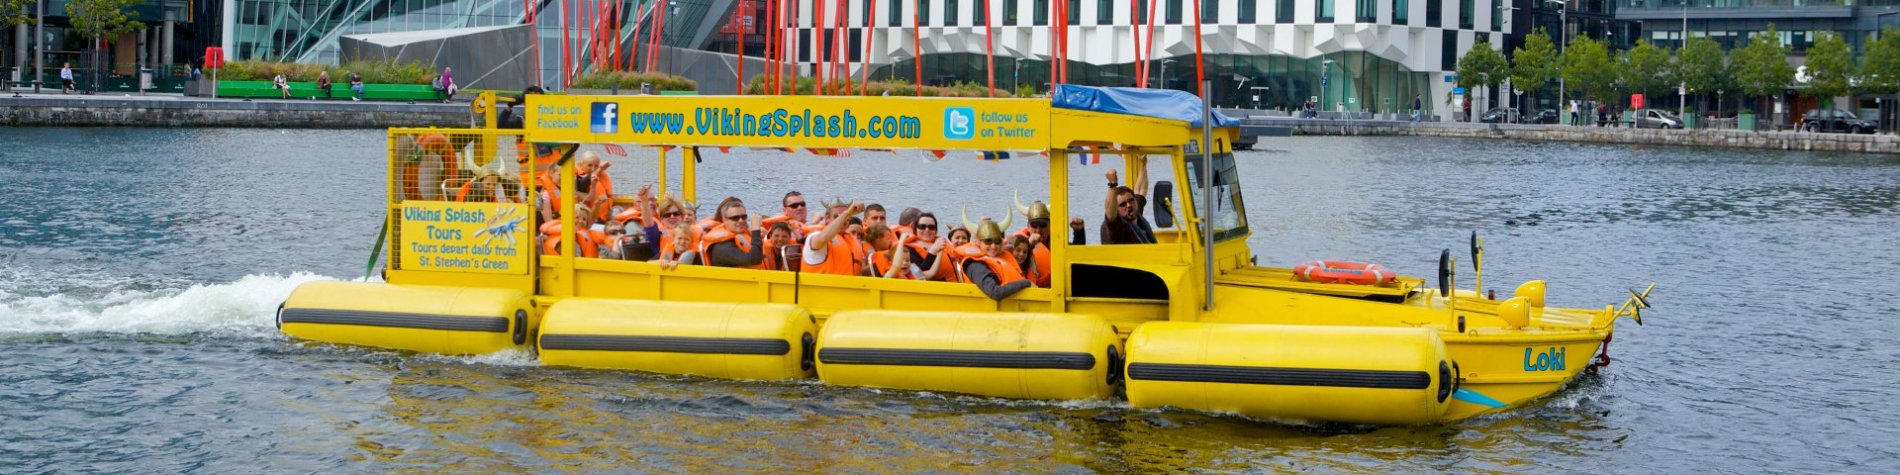 Group tour in the centre of Dublin - Viking Splash water tour